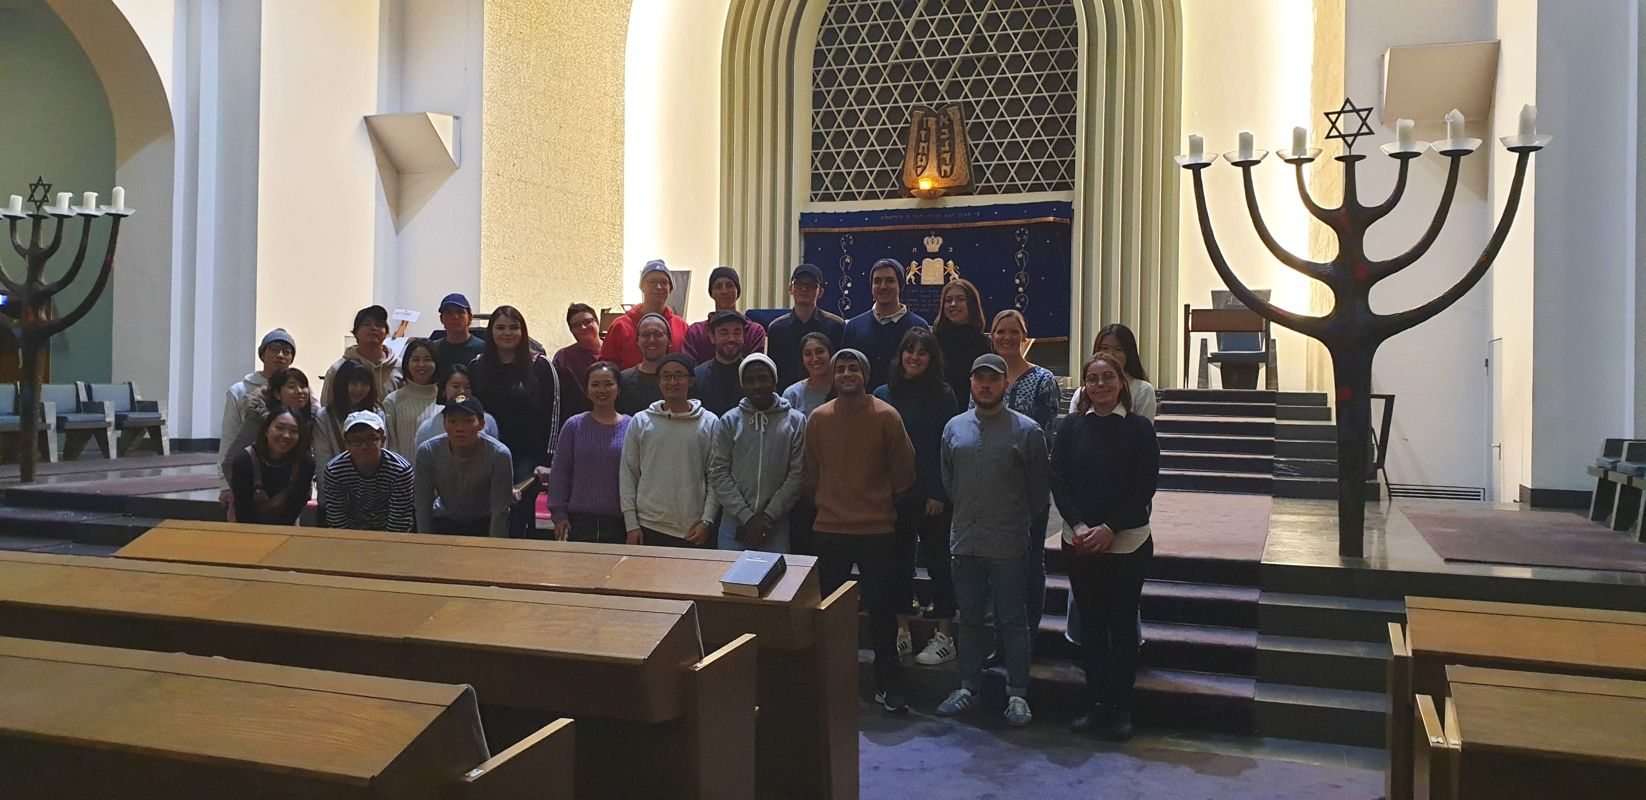 Group picture of students inside the synagogue